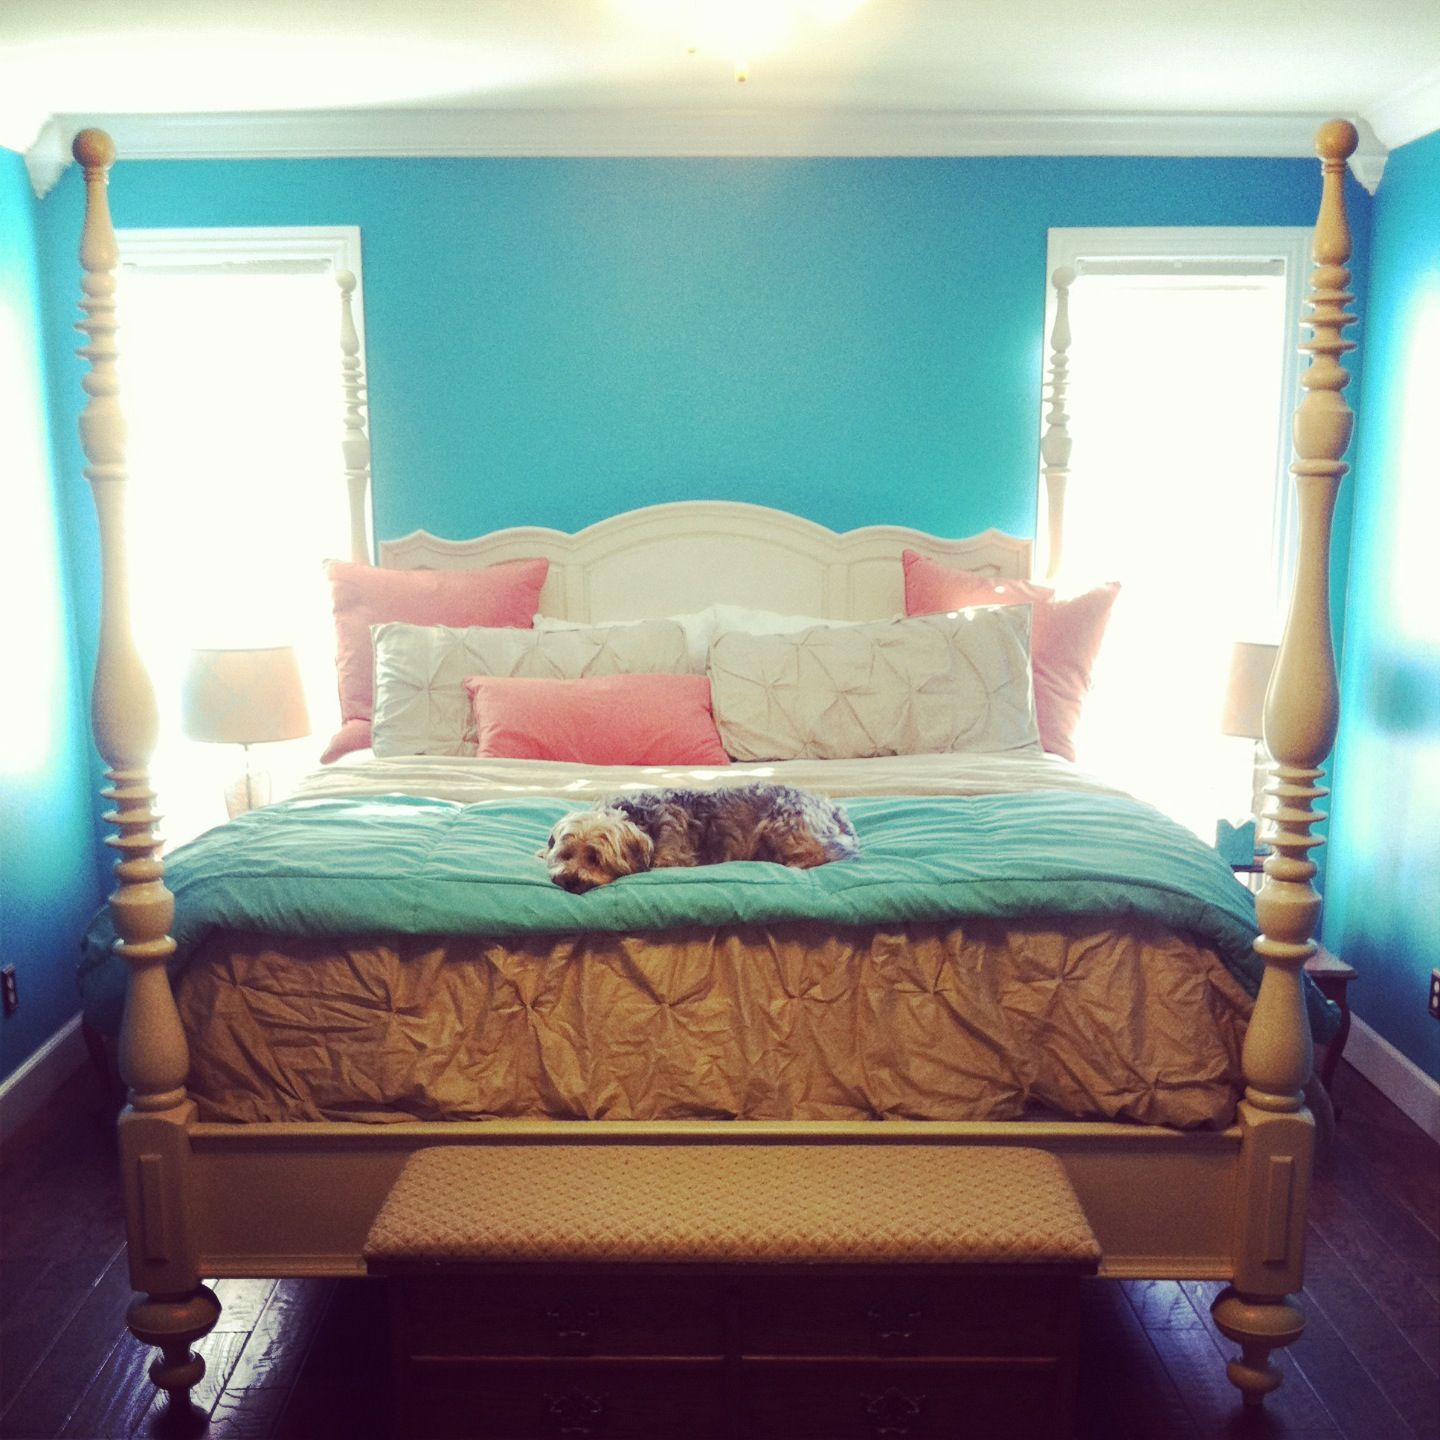 Bedroom ideas master bedroom turquoise and coral savannah king